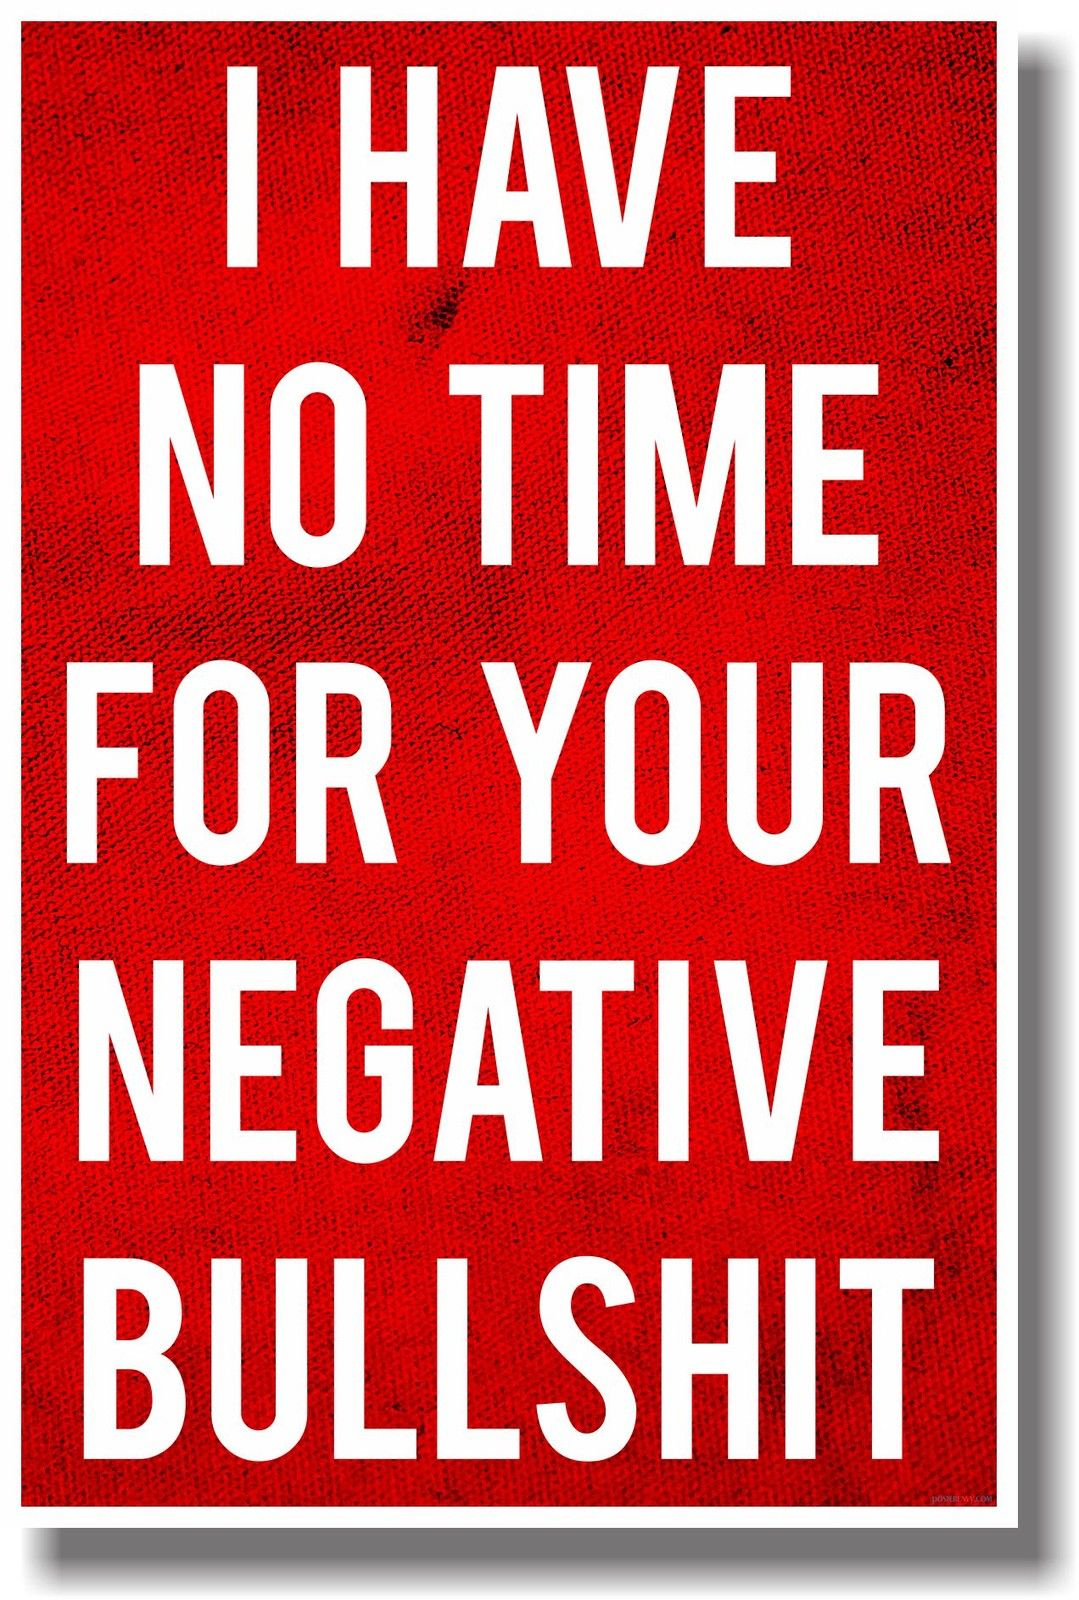 I Have No Time For Your Negative Bullshit Sticker Free Vector